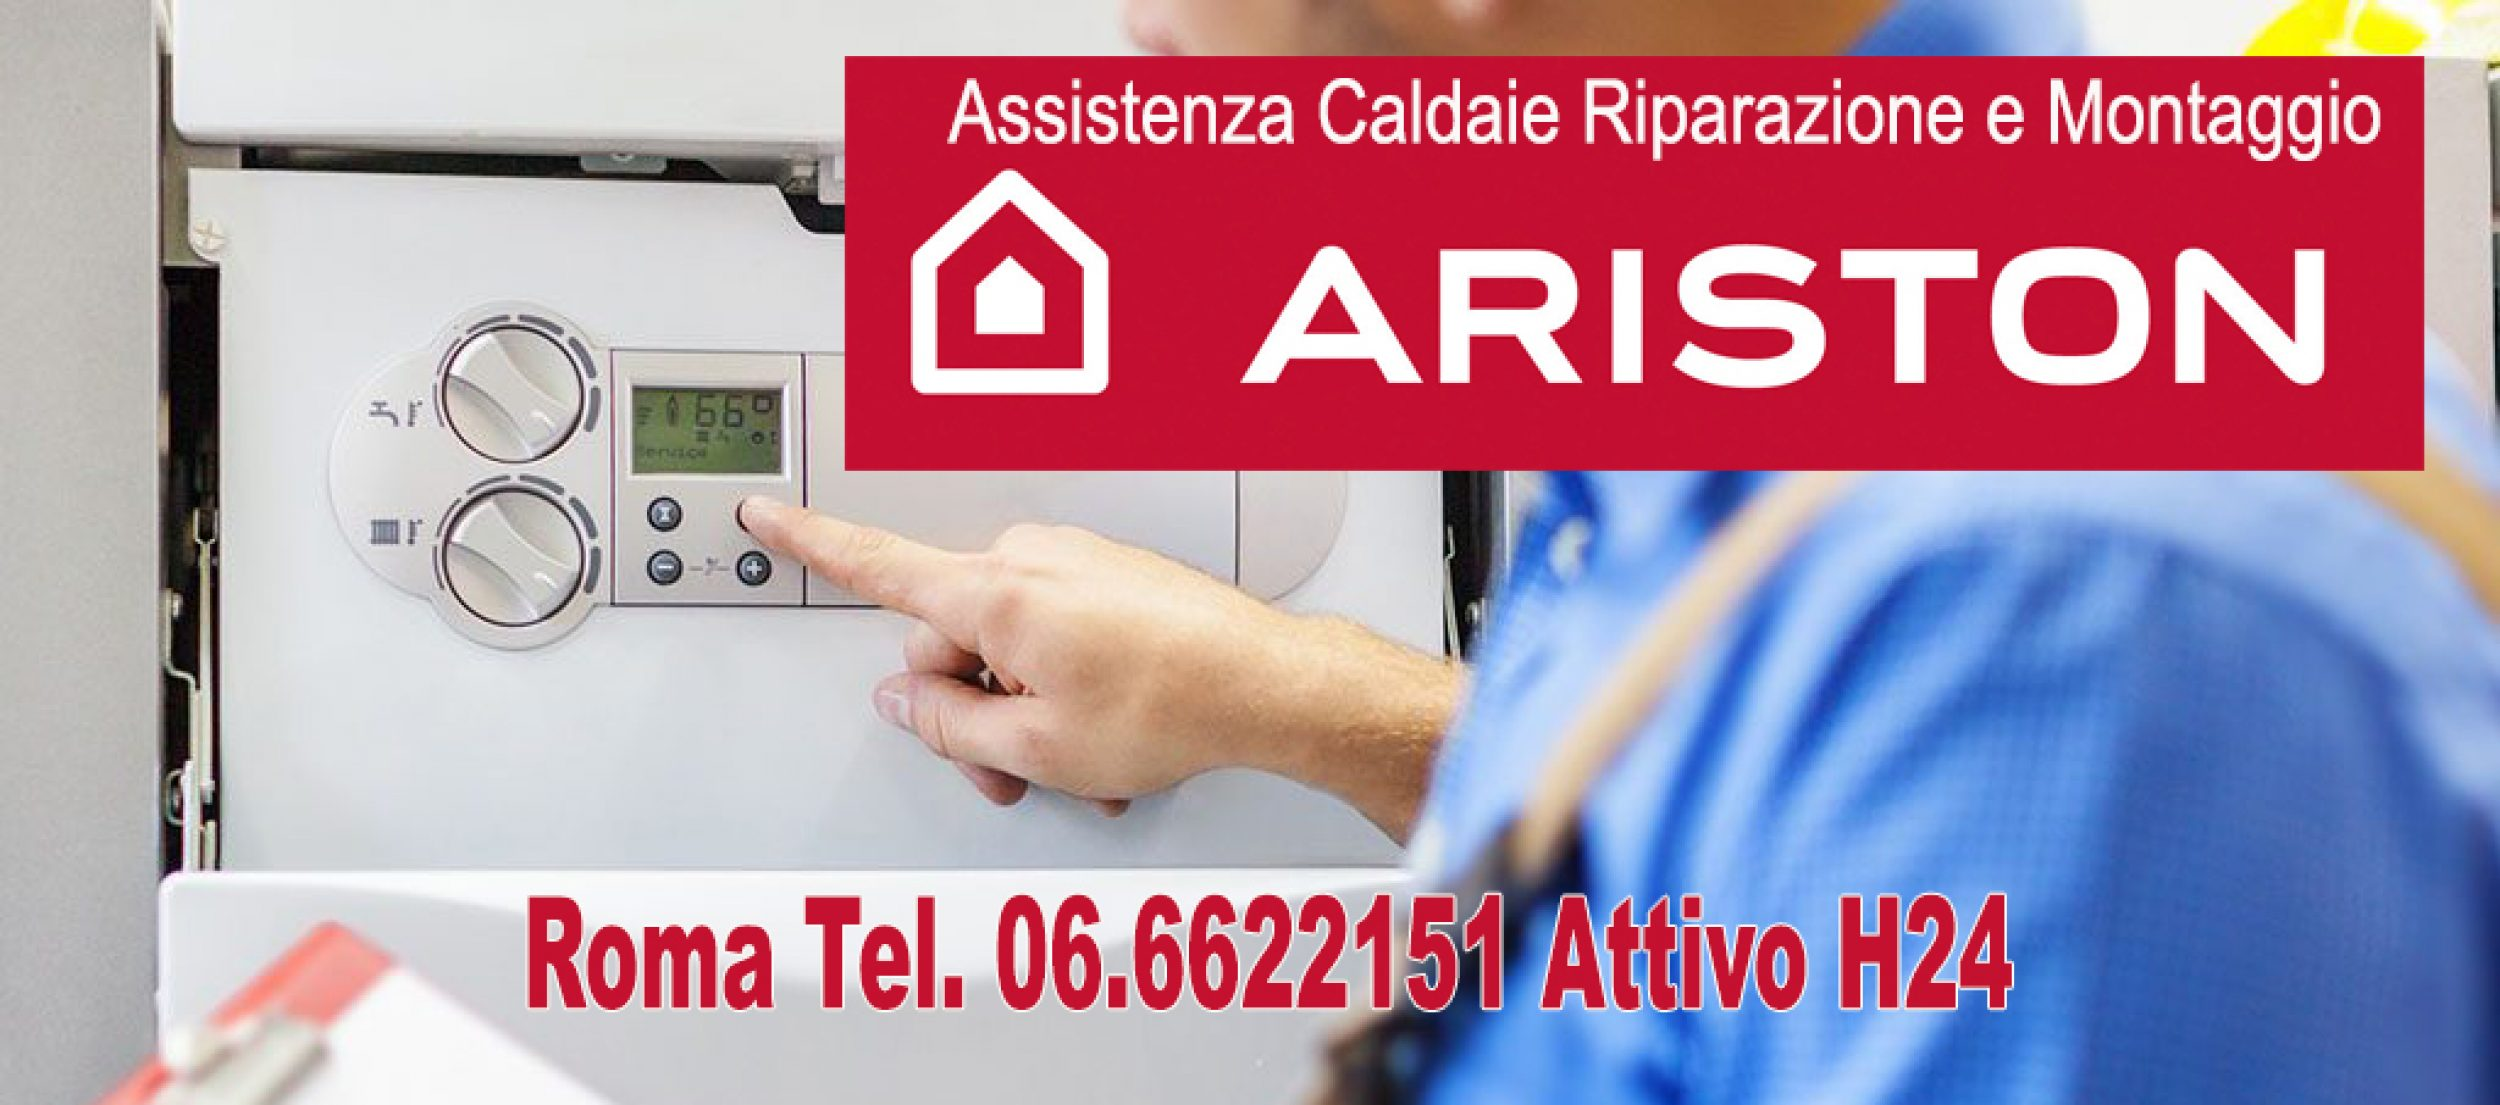 Assistenza caldaie Ariston Roma Tel. 06.6622151